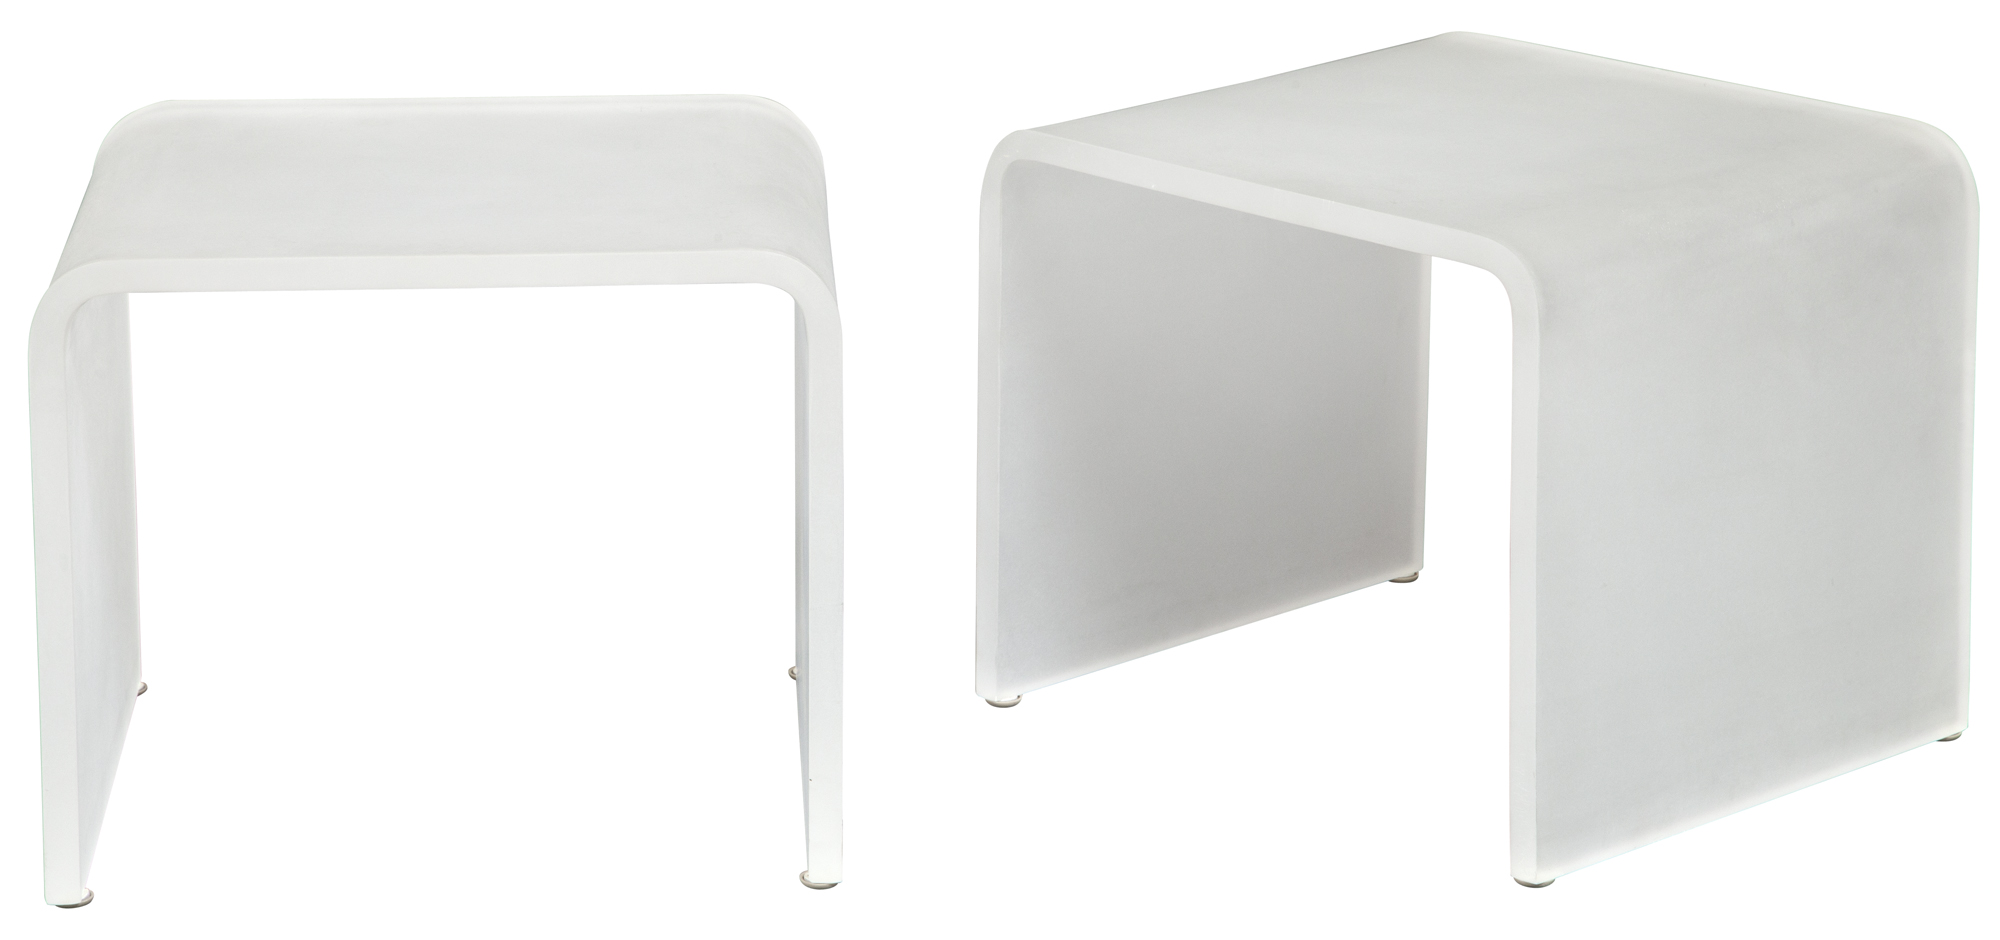 Lot image - Pair of Frosted Acrylic Waterfall Low Tables